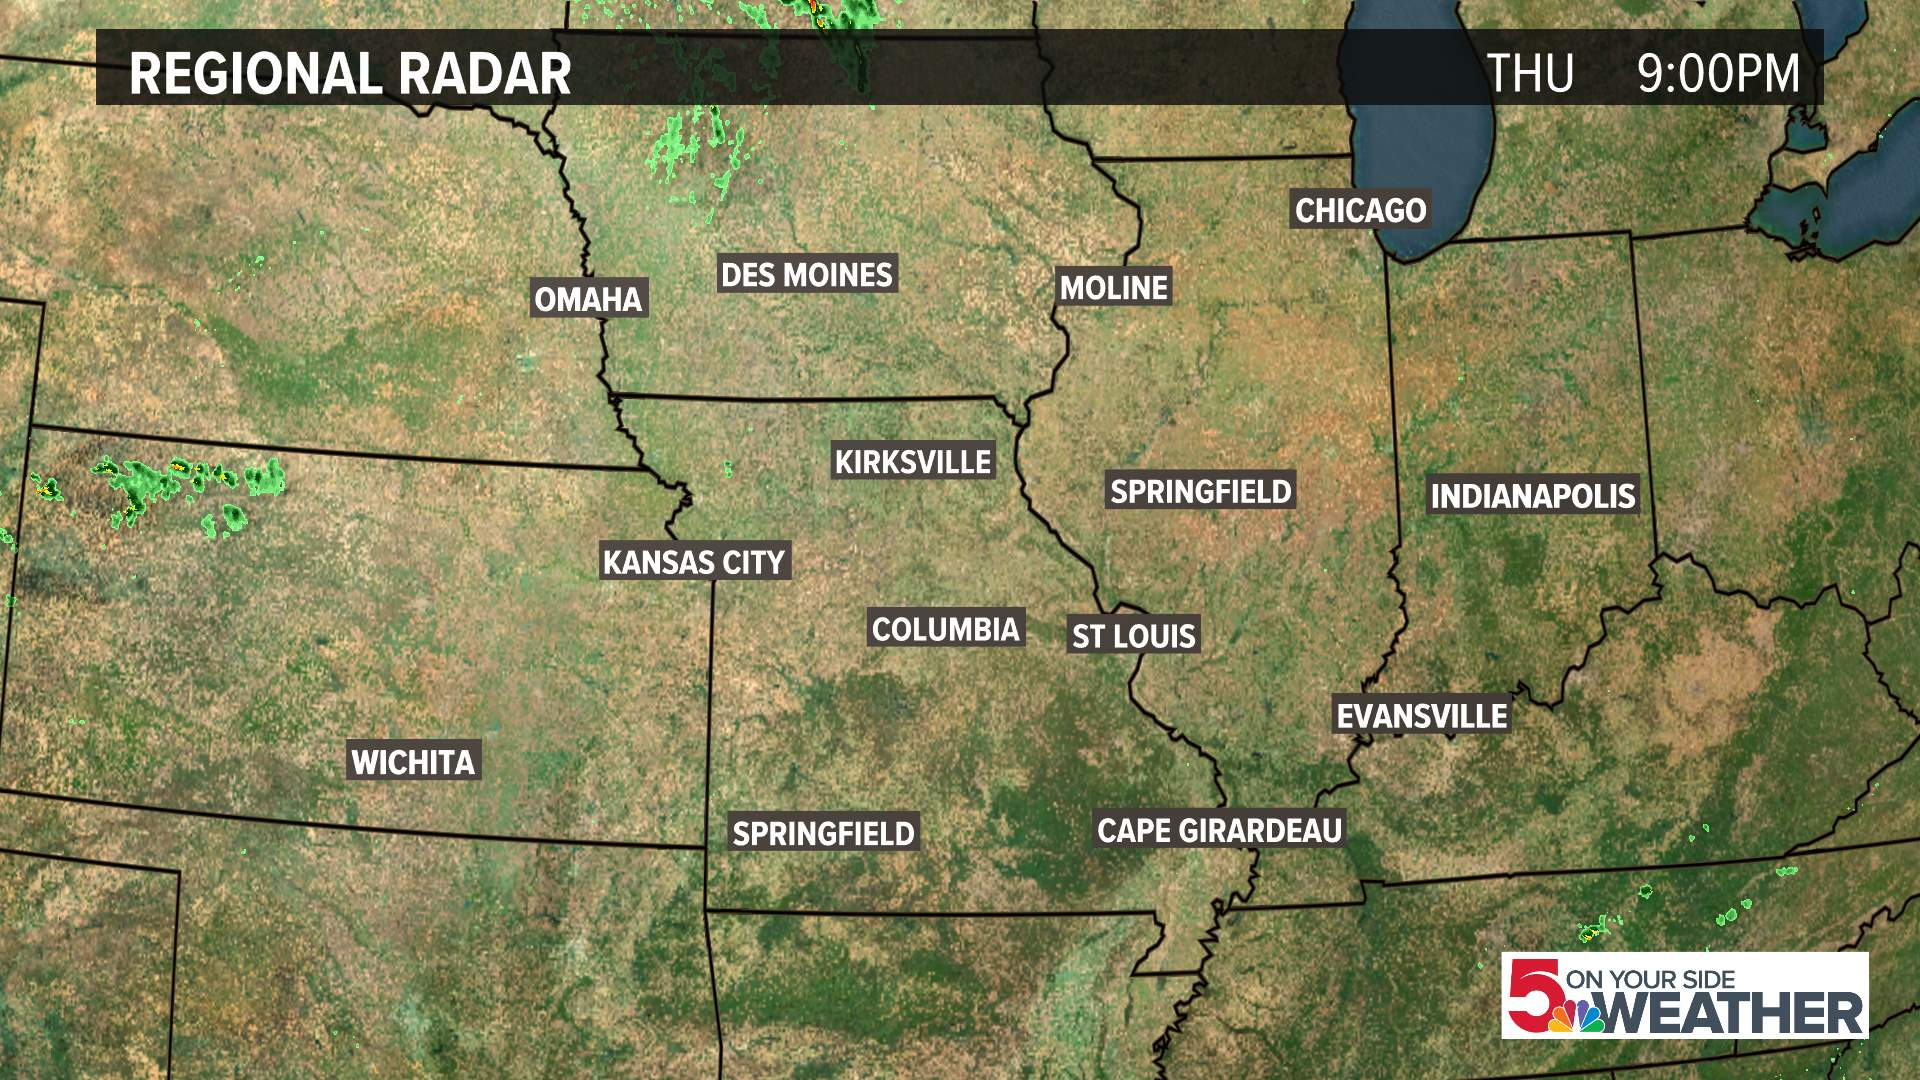 Ksdk Weather Map.Radar Weather St Louis Ksdk Com